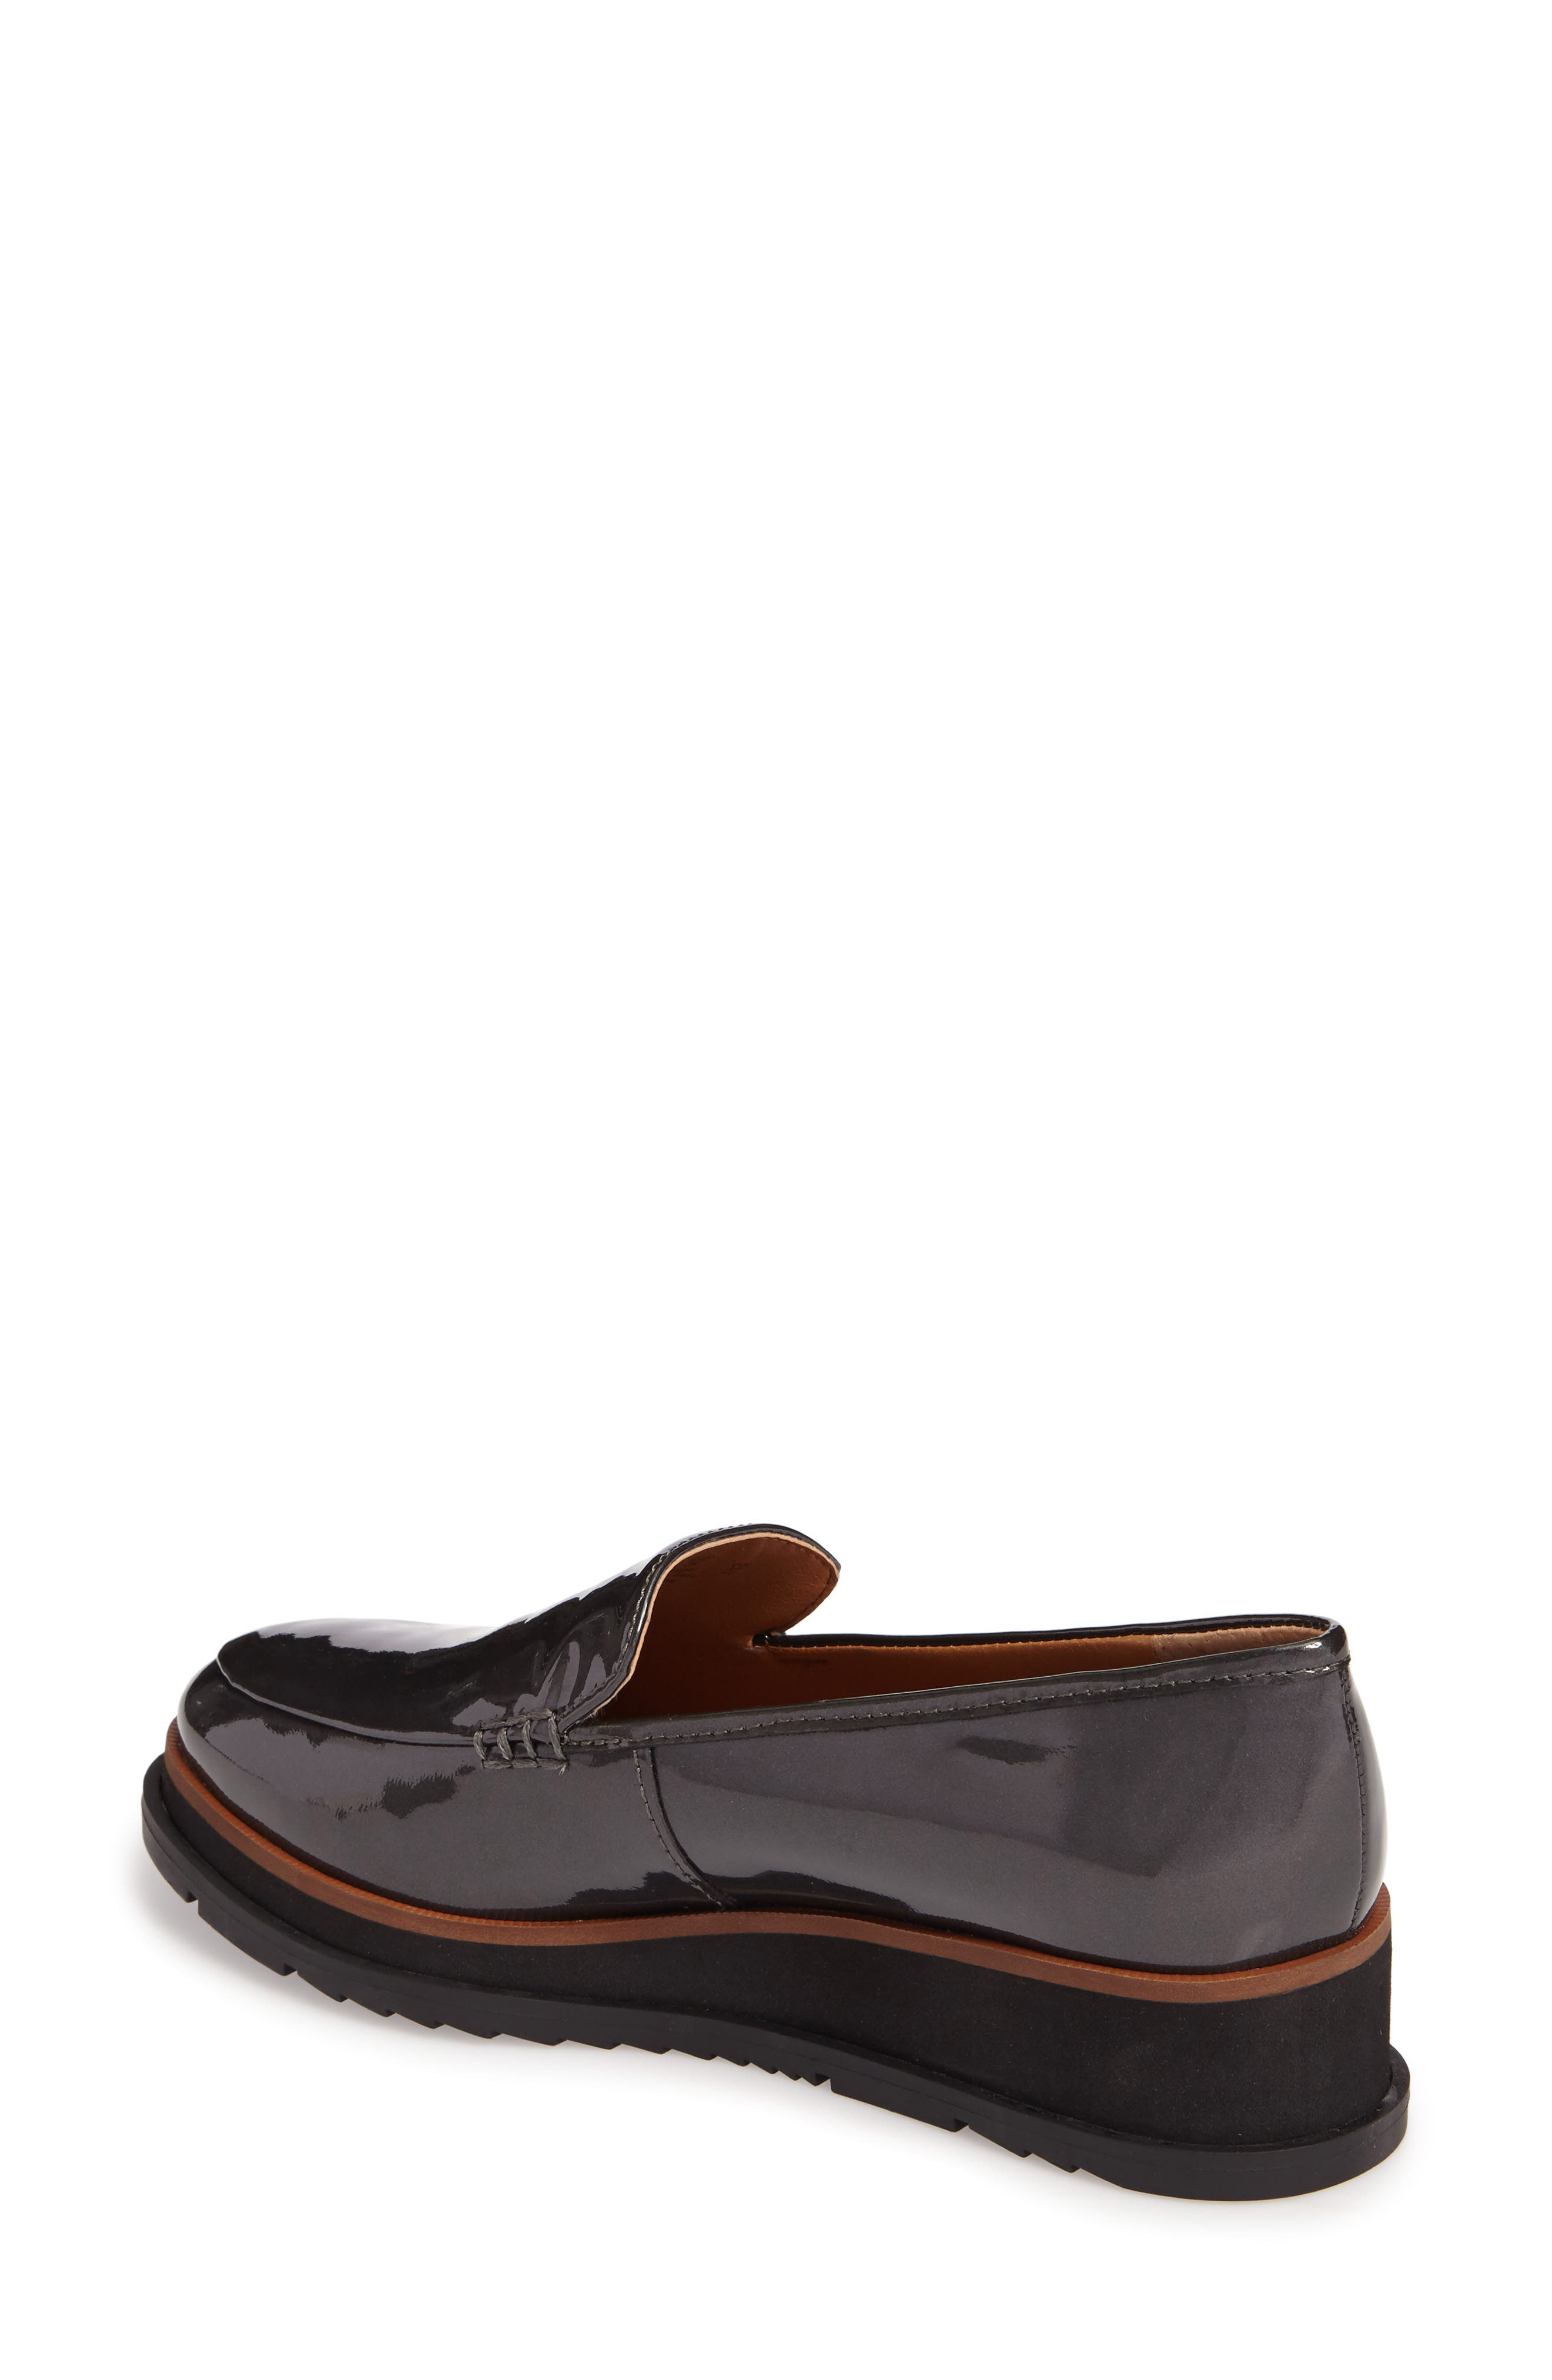 Ayers Loafer Flat,                             Alternate thumbnail 13, color,